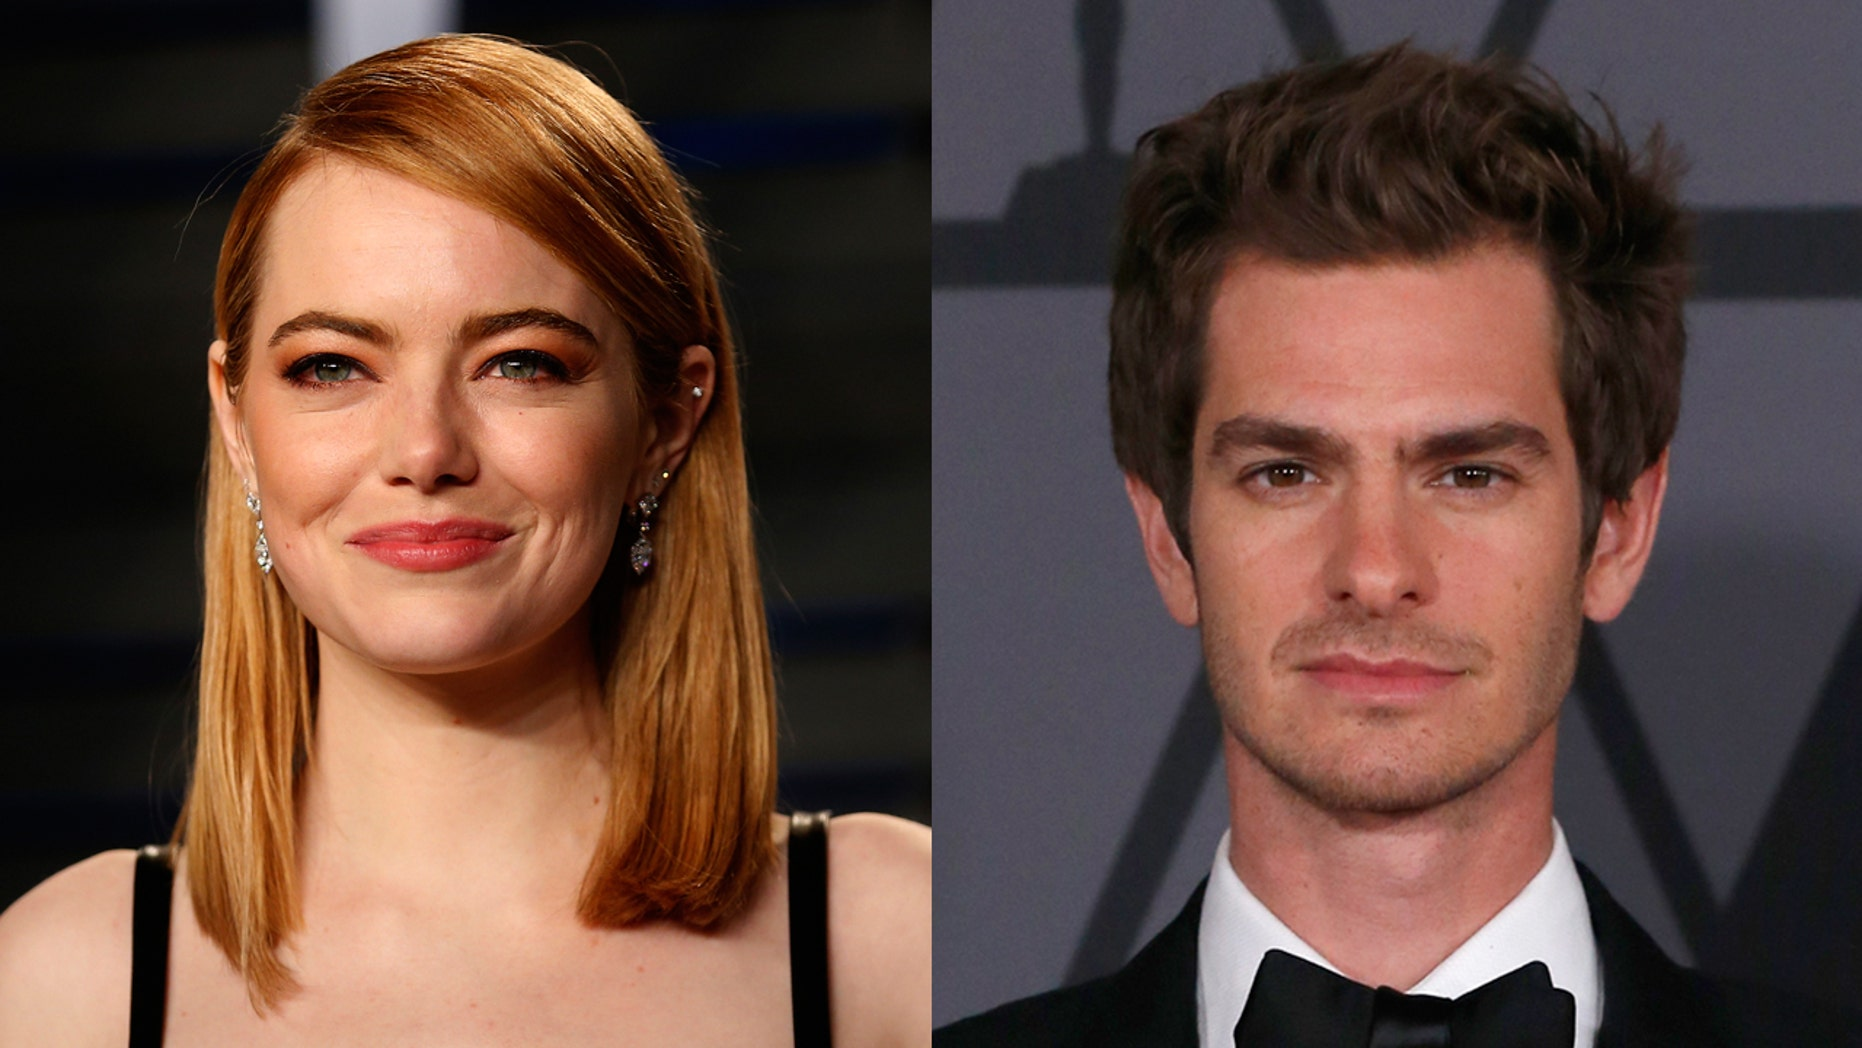 Emma Stone and Andew Garfield were spotted dinning together at a New York City restaurant on Tuesday night.